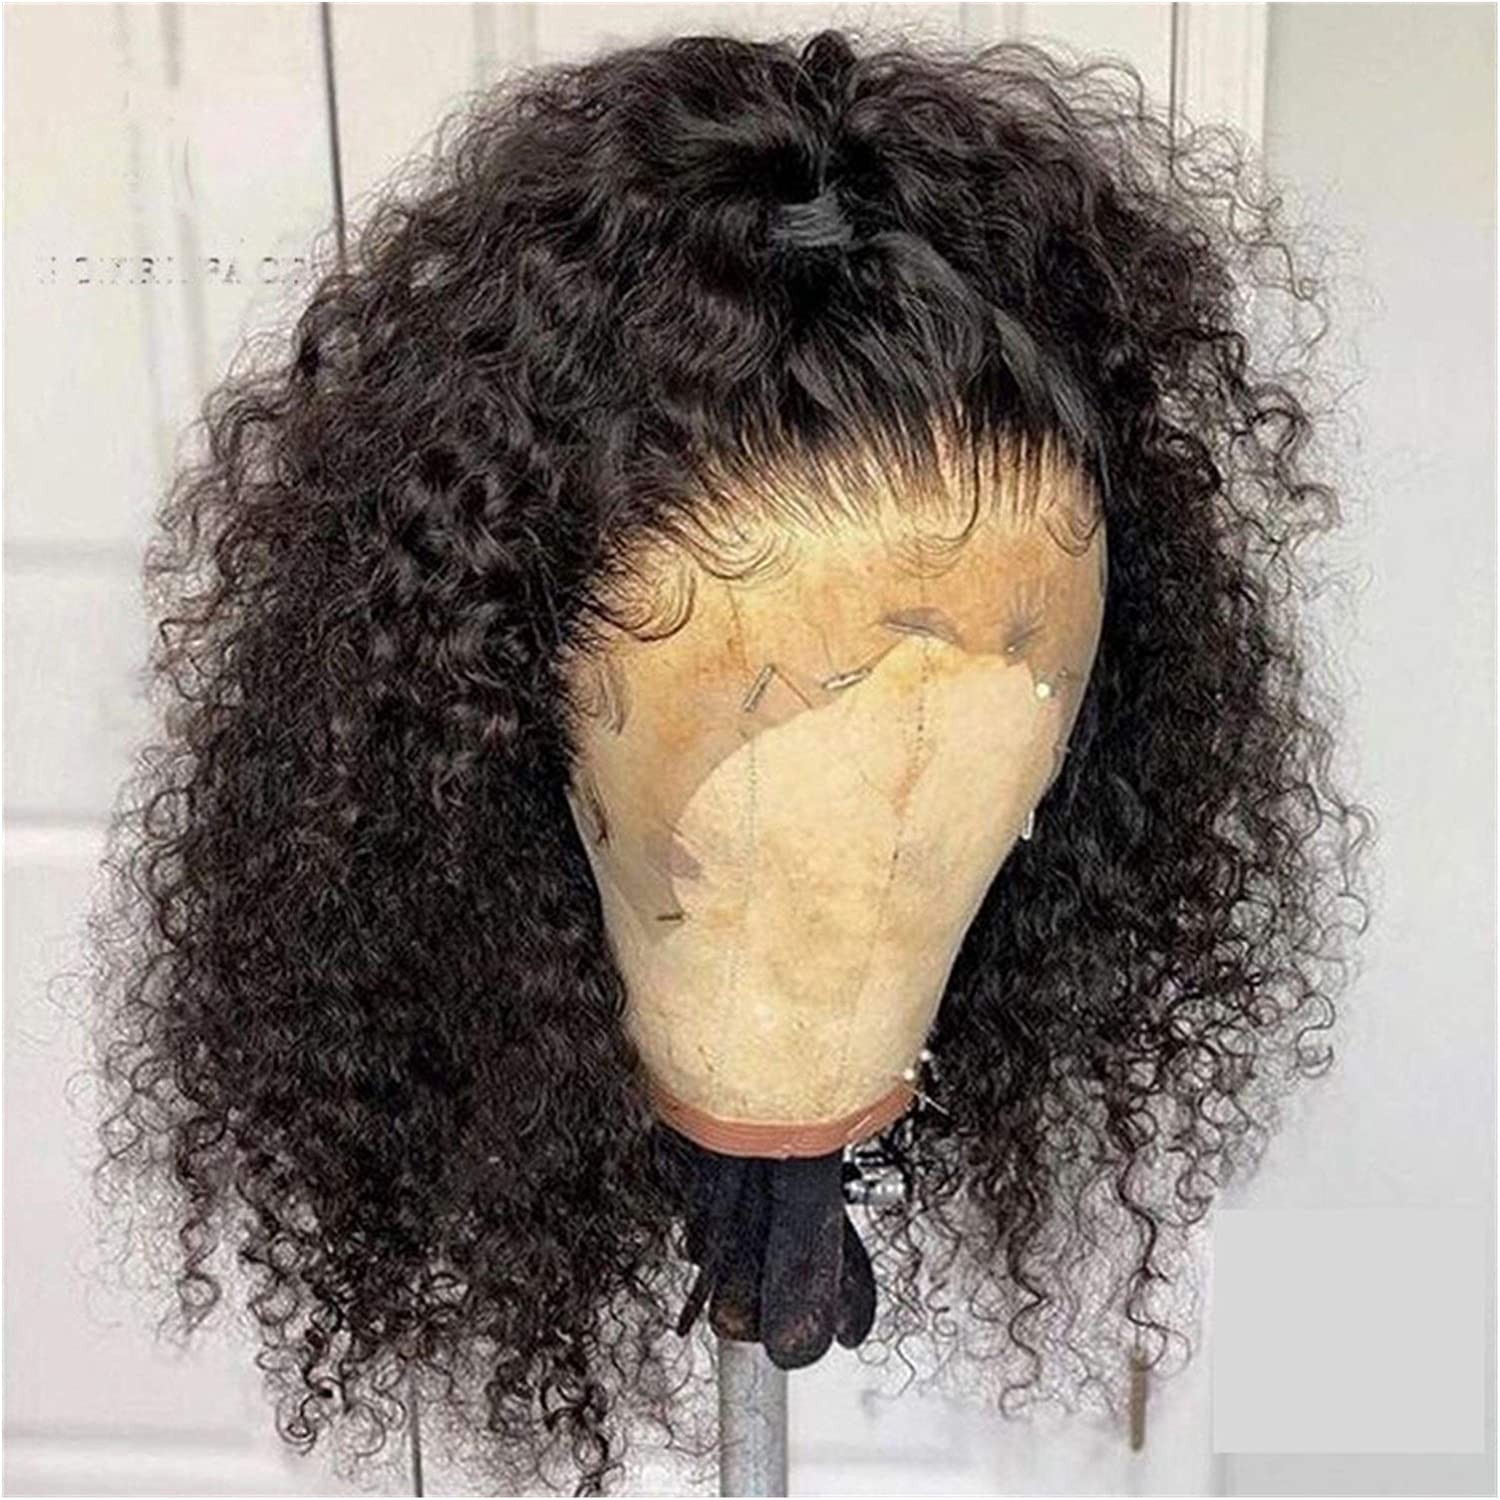 WLDZSW Dark Curly Oakland Mall Hair Lace Front Color 22in Size Ranking TOP17 180% Wig :